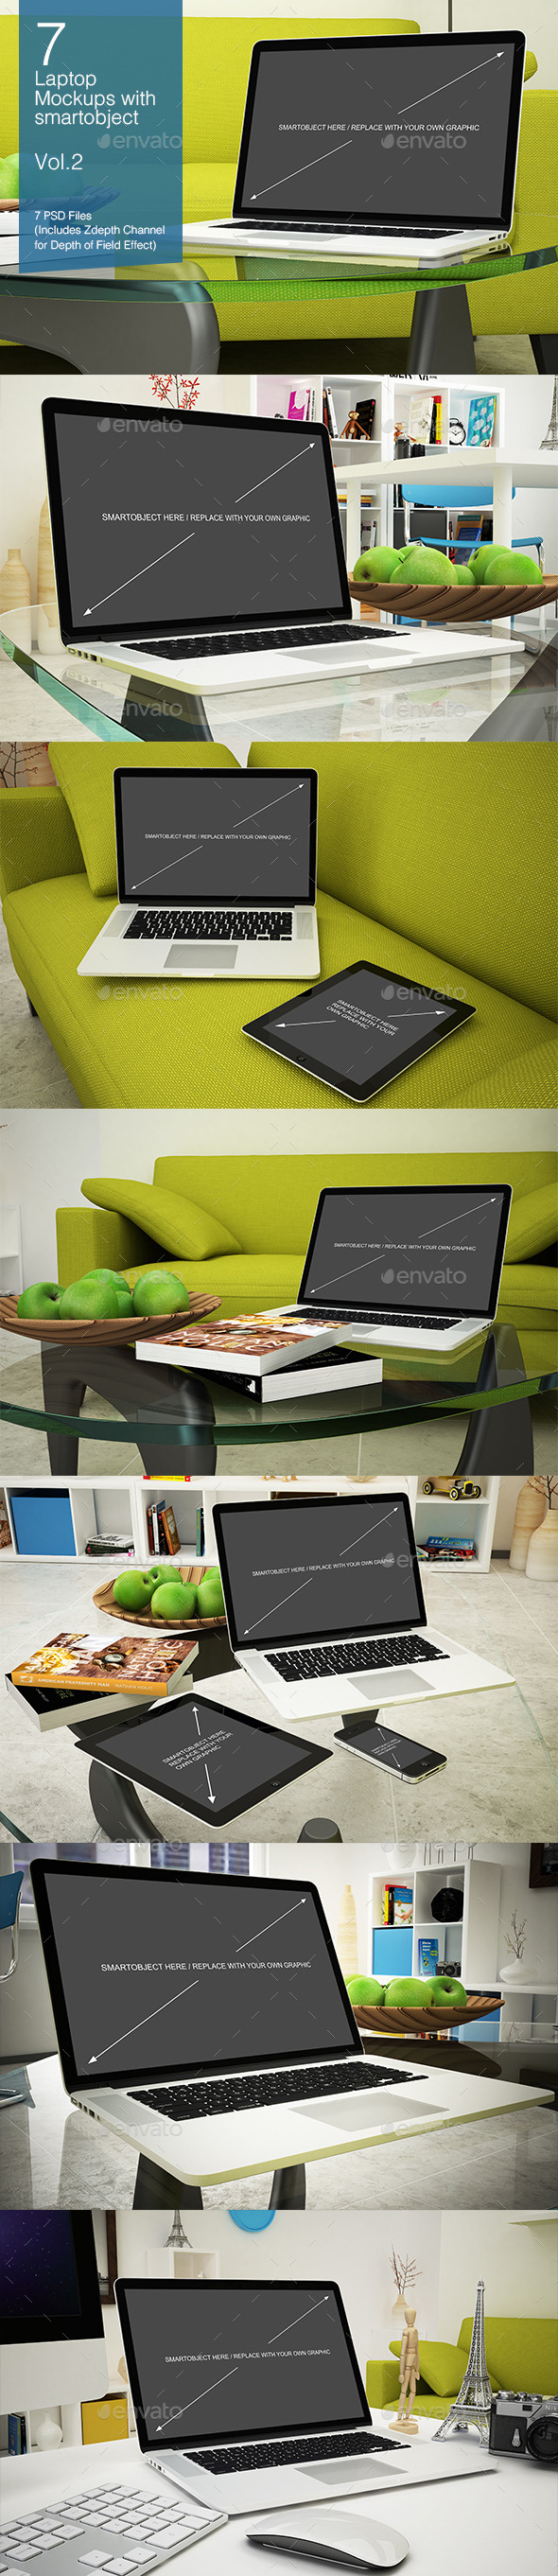 Laptop Mockup 7 Poses - Vol.2 - Laptop Displays